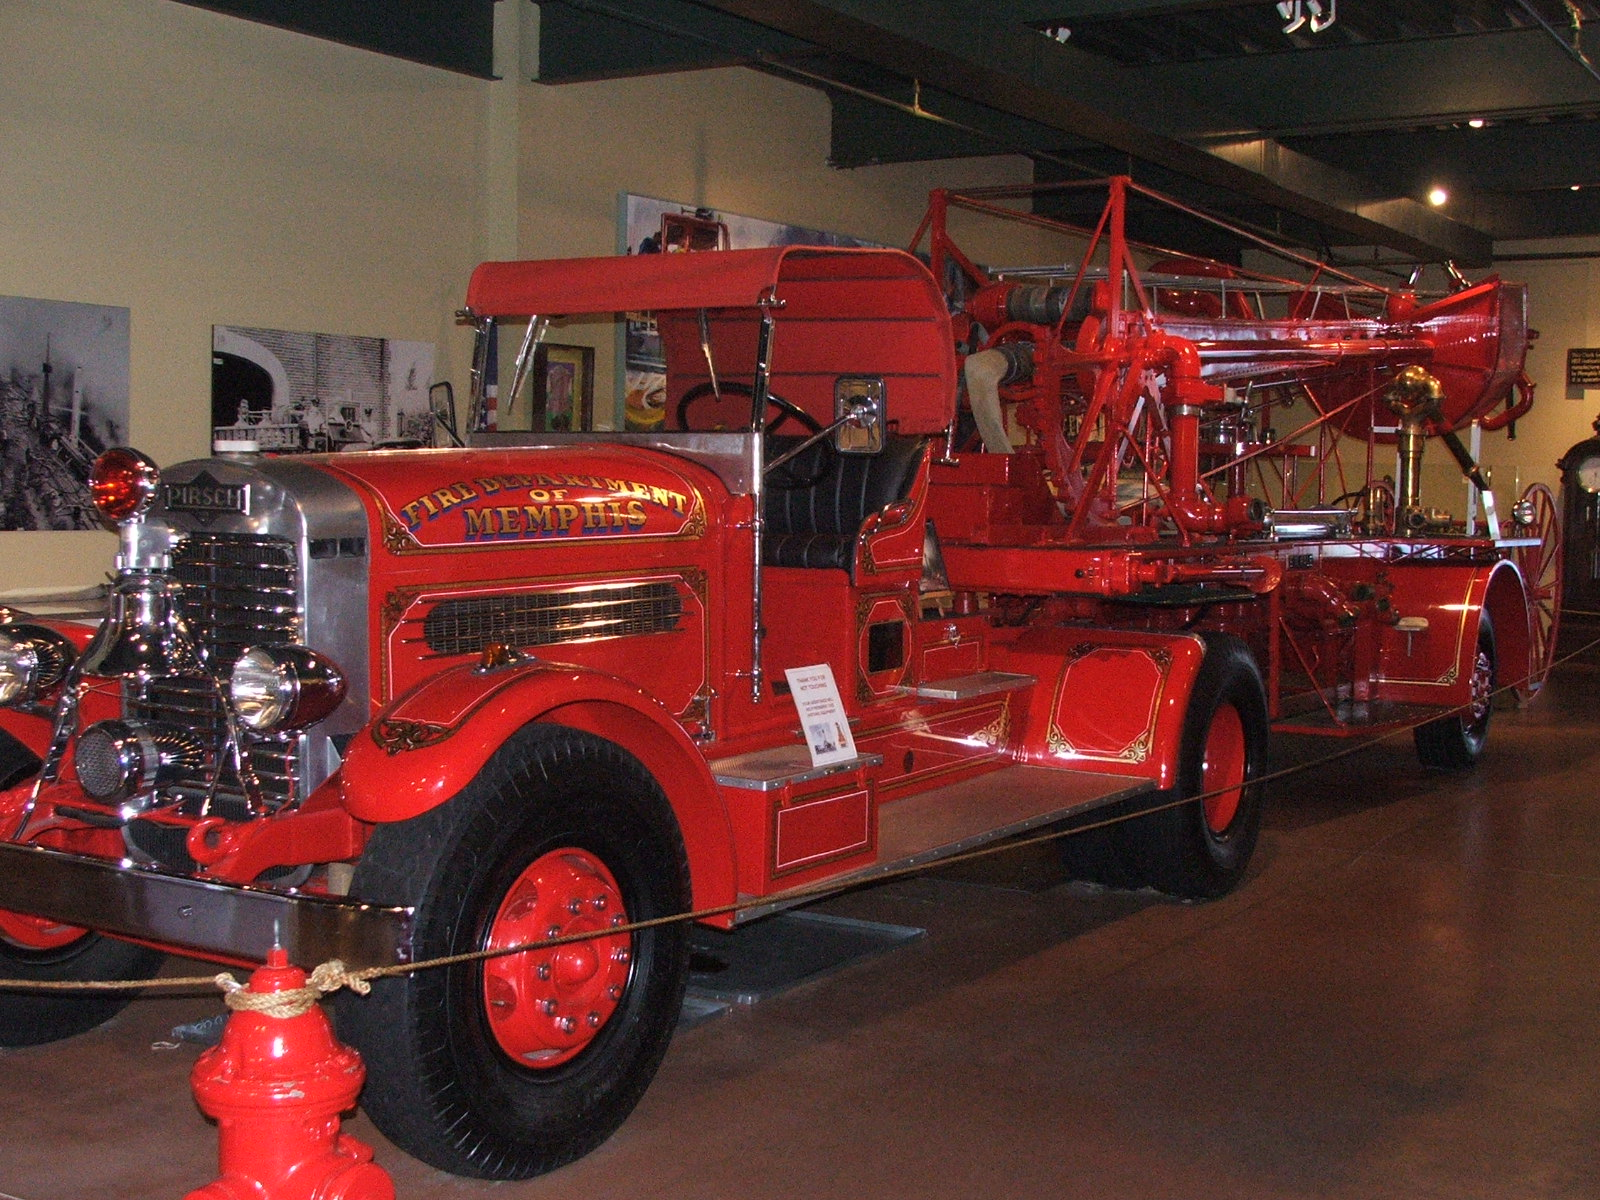 025 Essay Example Visit To Fire Station Exhibits Unusual Full